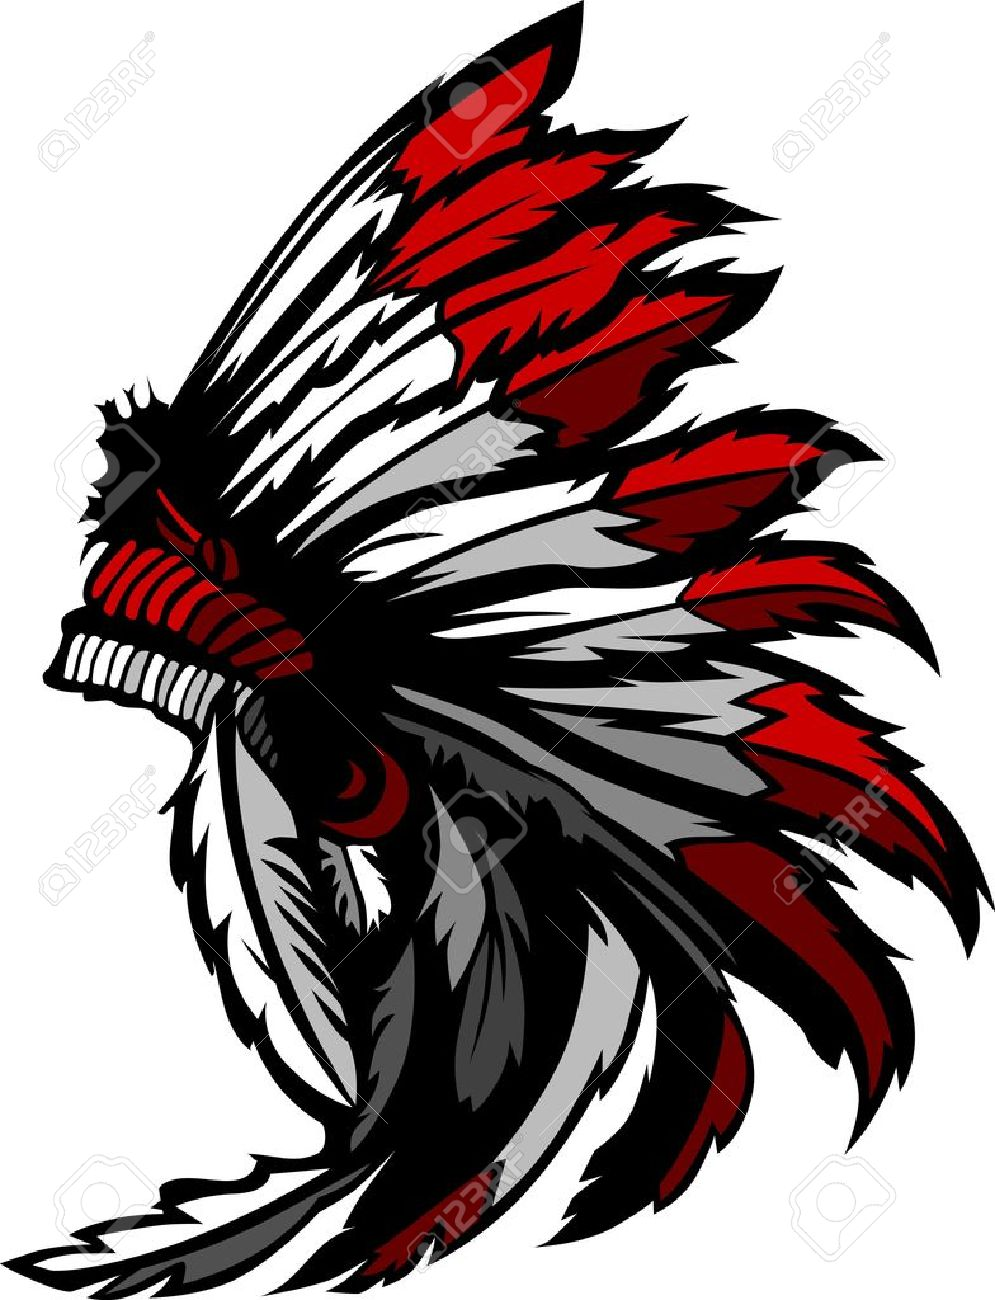 graphic native american indian chief headdress royalty free cliparts rh 123rf com native american vector pattern free native american vector designs